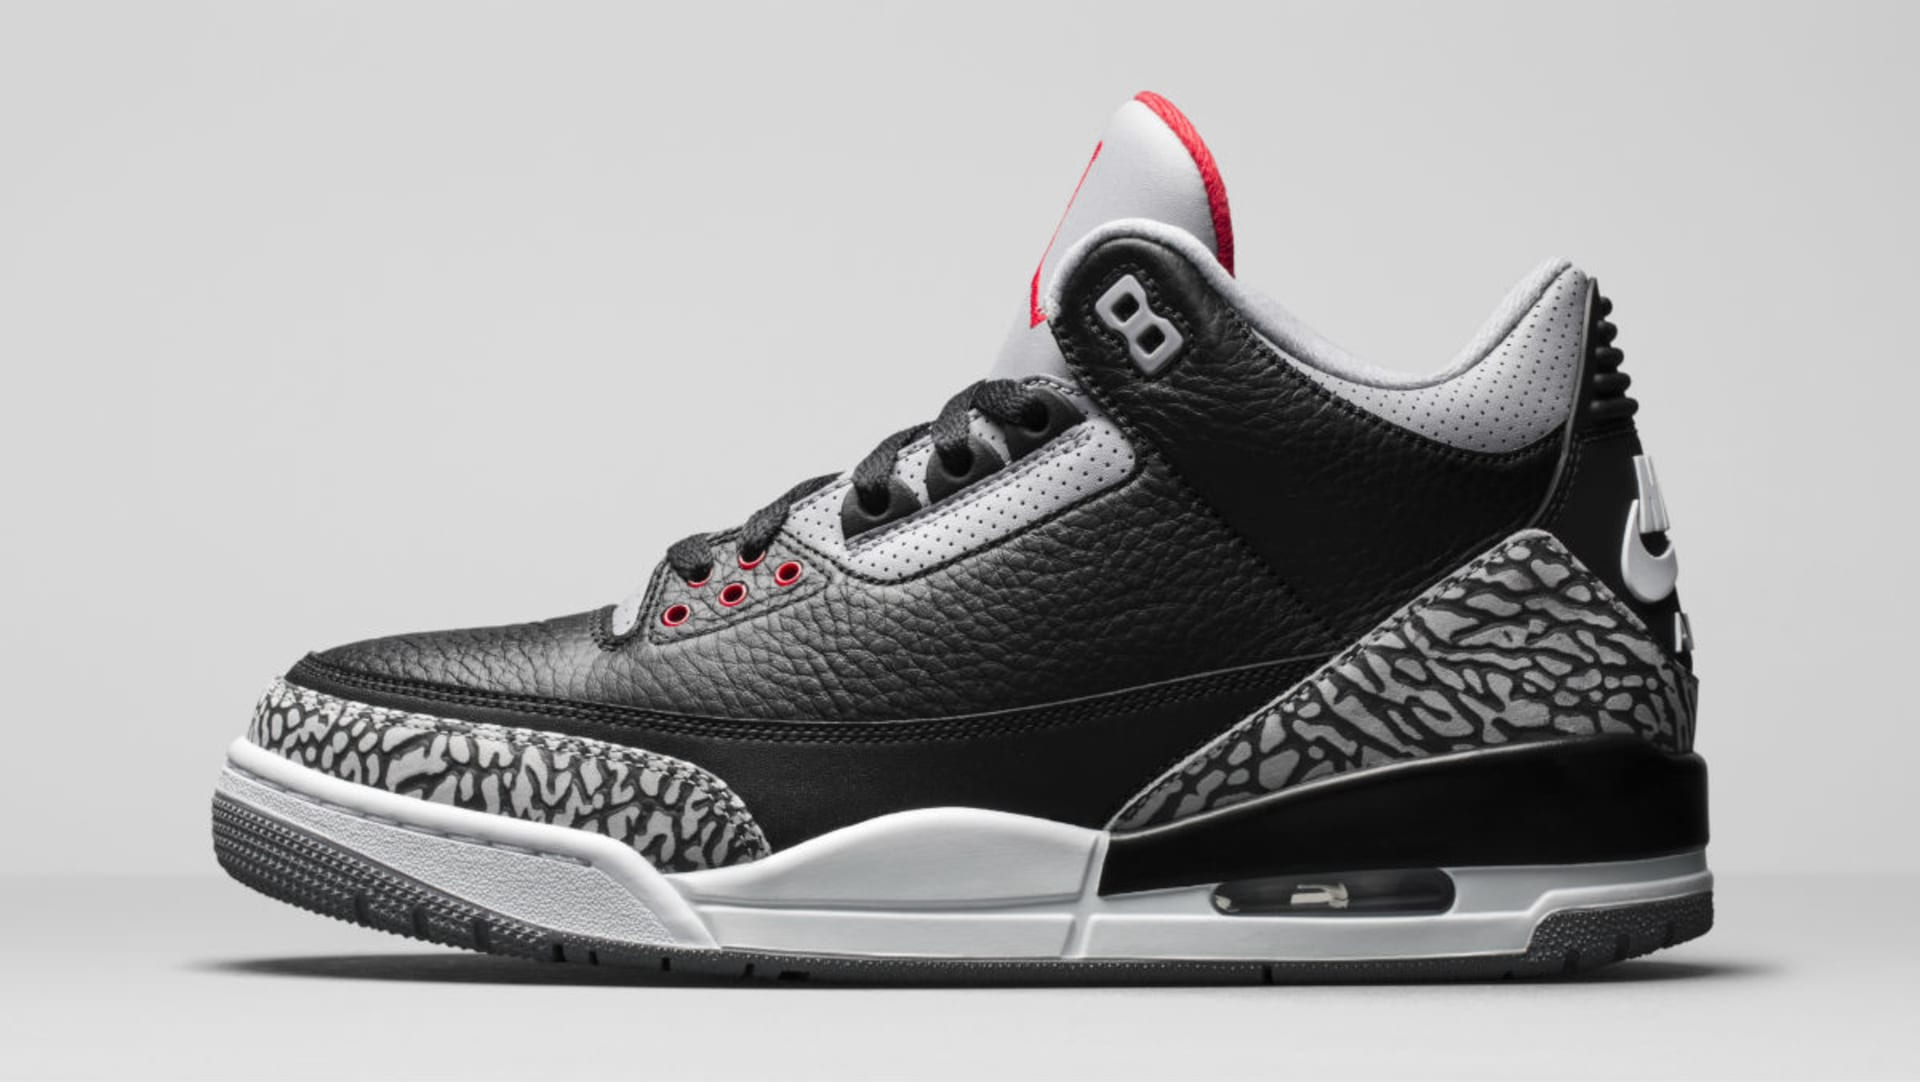 793f72c36ed Air Jordan 3 III Black Cement Release Date 854262-001 Profile